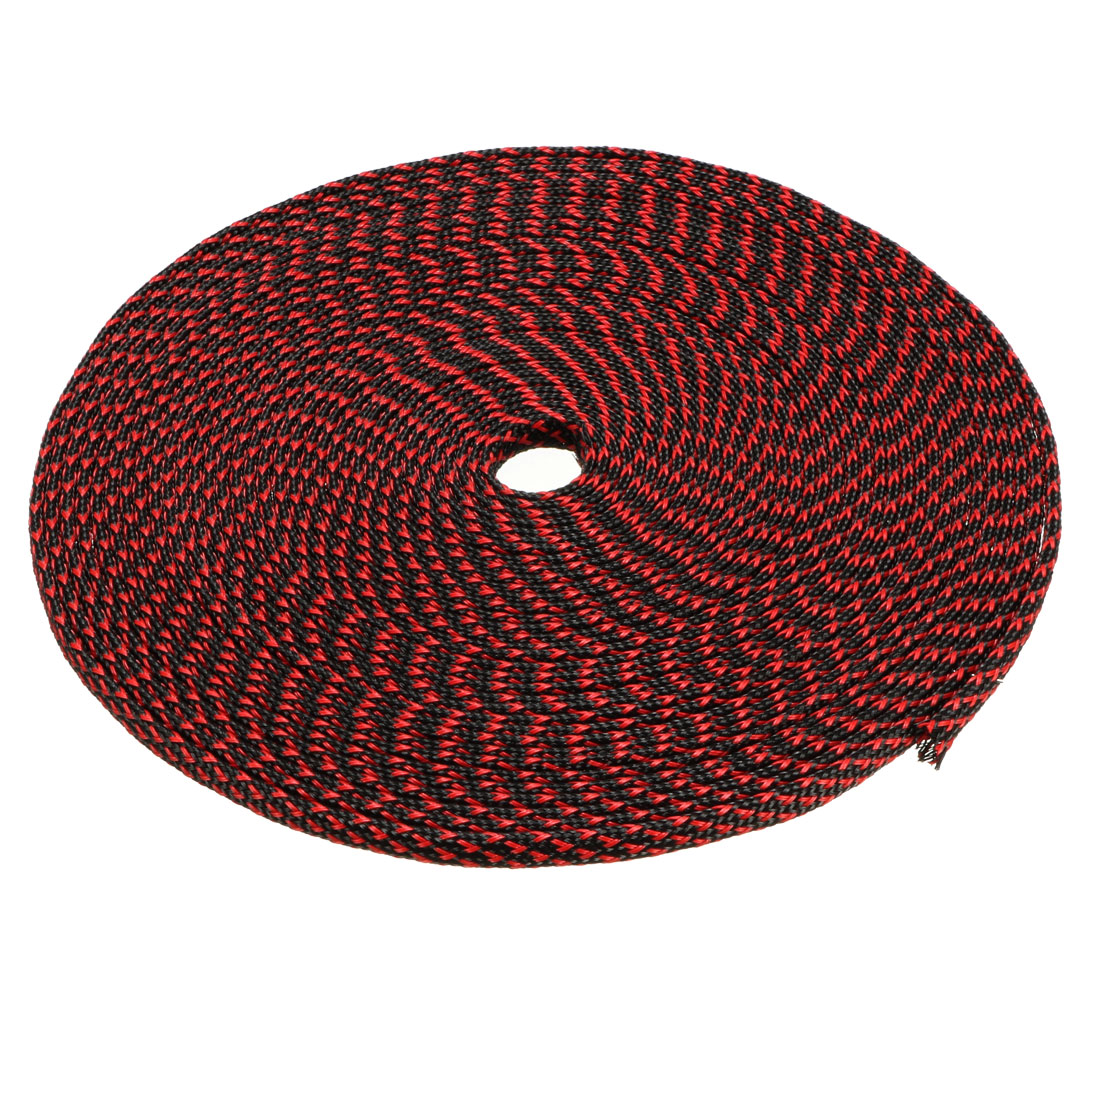 PET Braided Sleeving 32.8 Feet 10m Expandable Cable Wrap 6mm Diameter Wire Sheath Black, Red